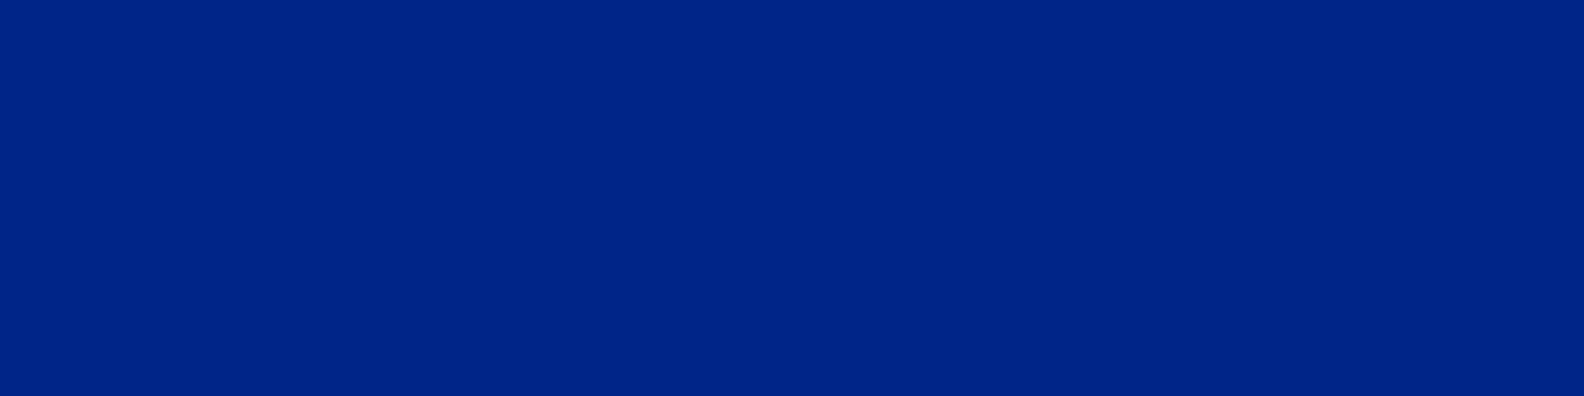 1584x396 Resolution Blue Solid Color Background